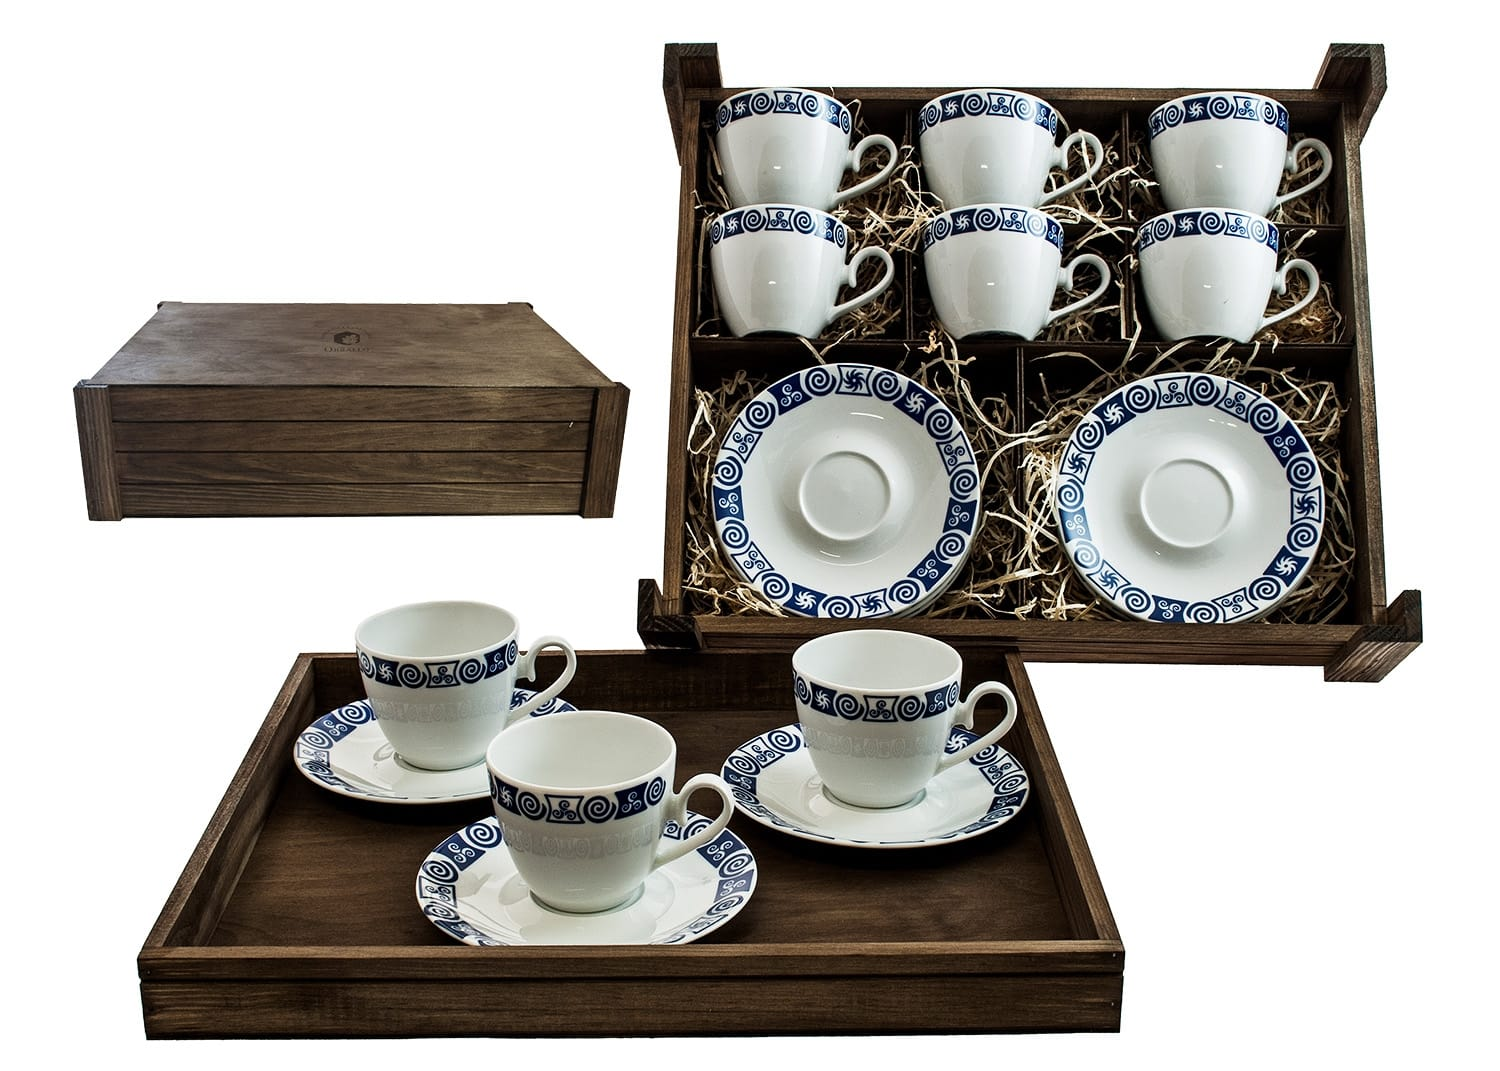 Six-Piece Tea set in wooden box. Volare desing, Celta collection